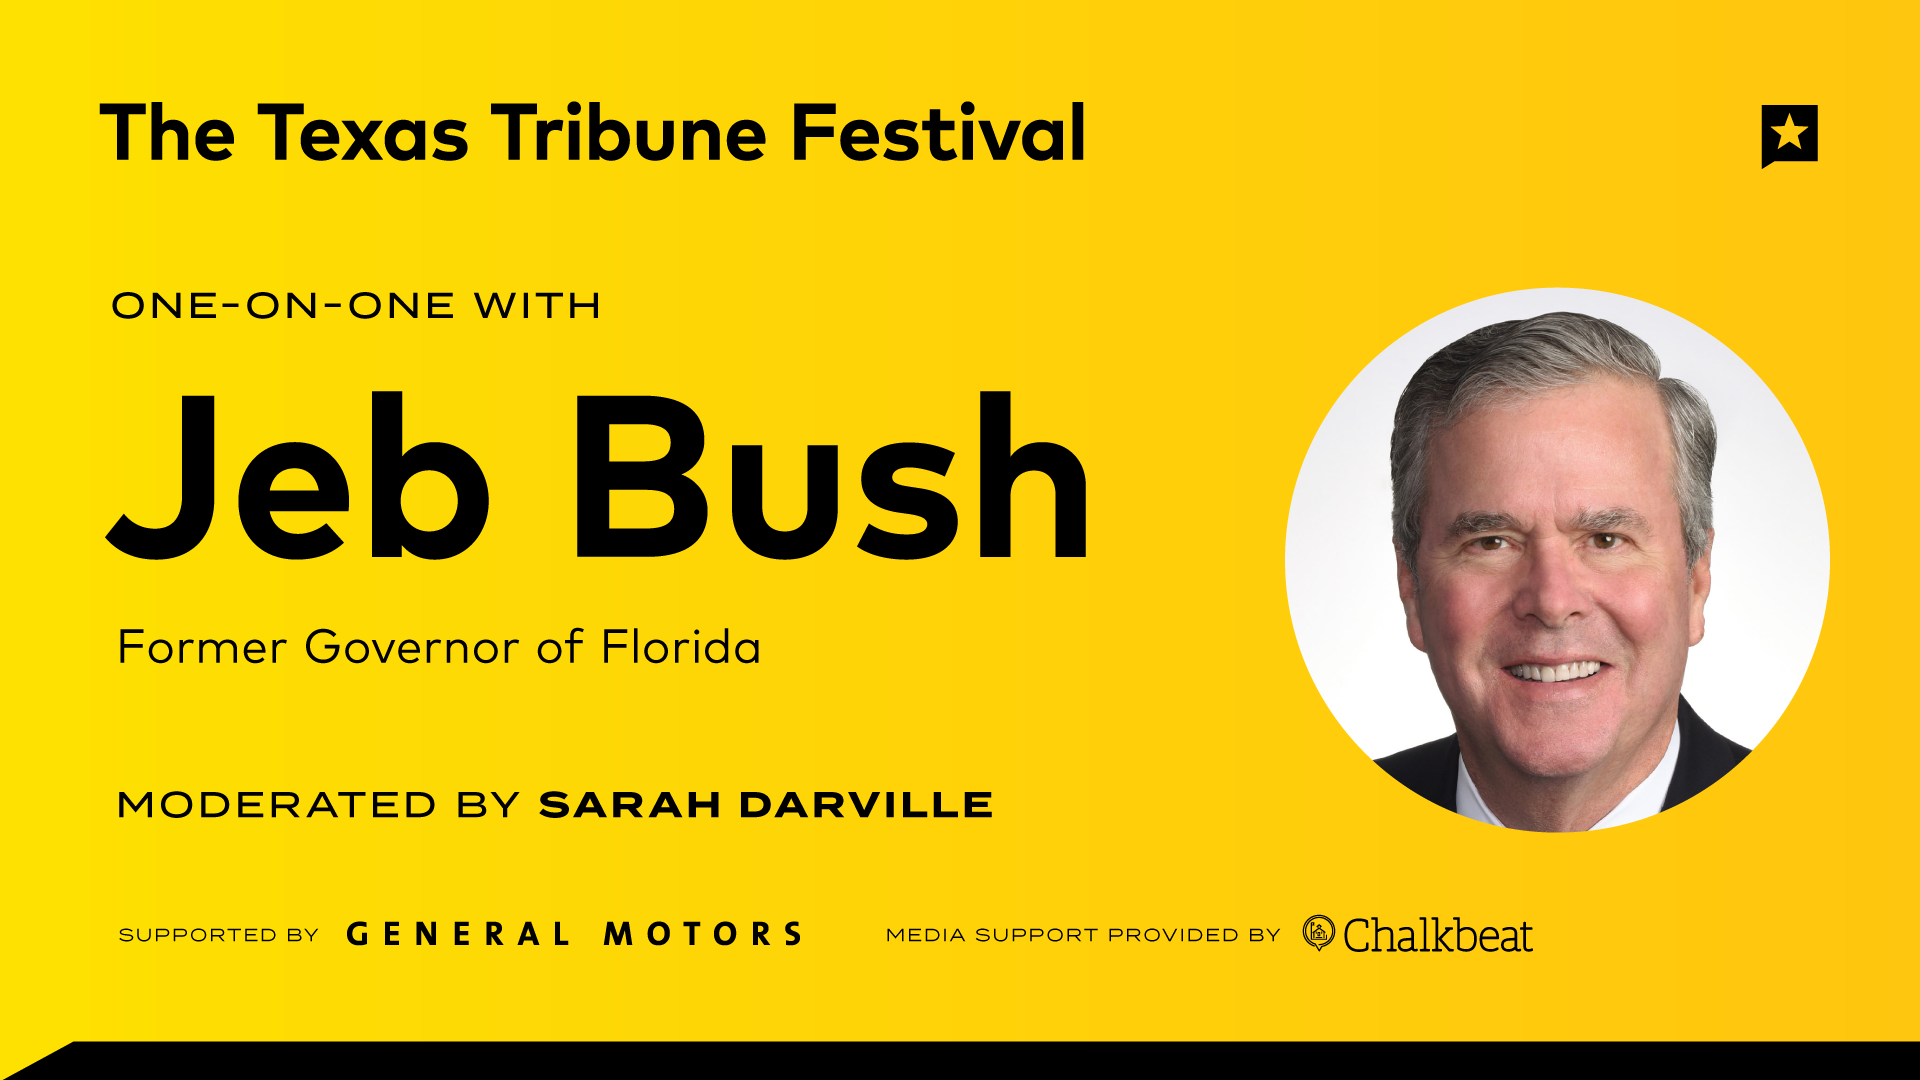 One-on-One with Jeb Bush